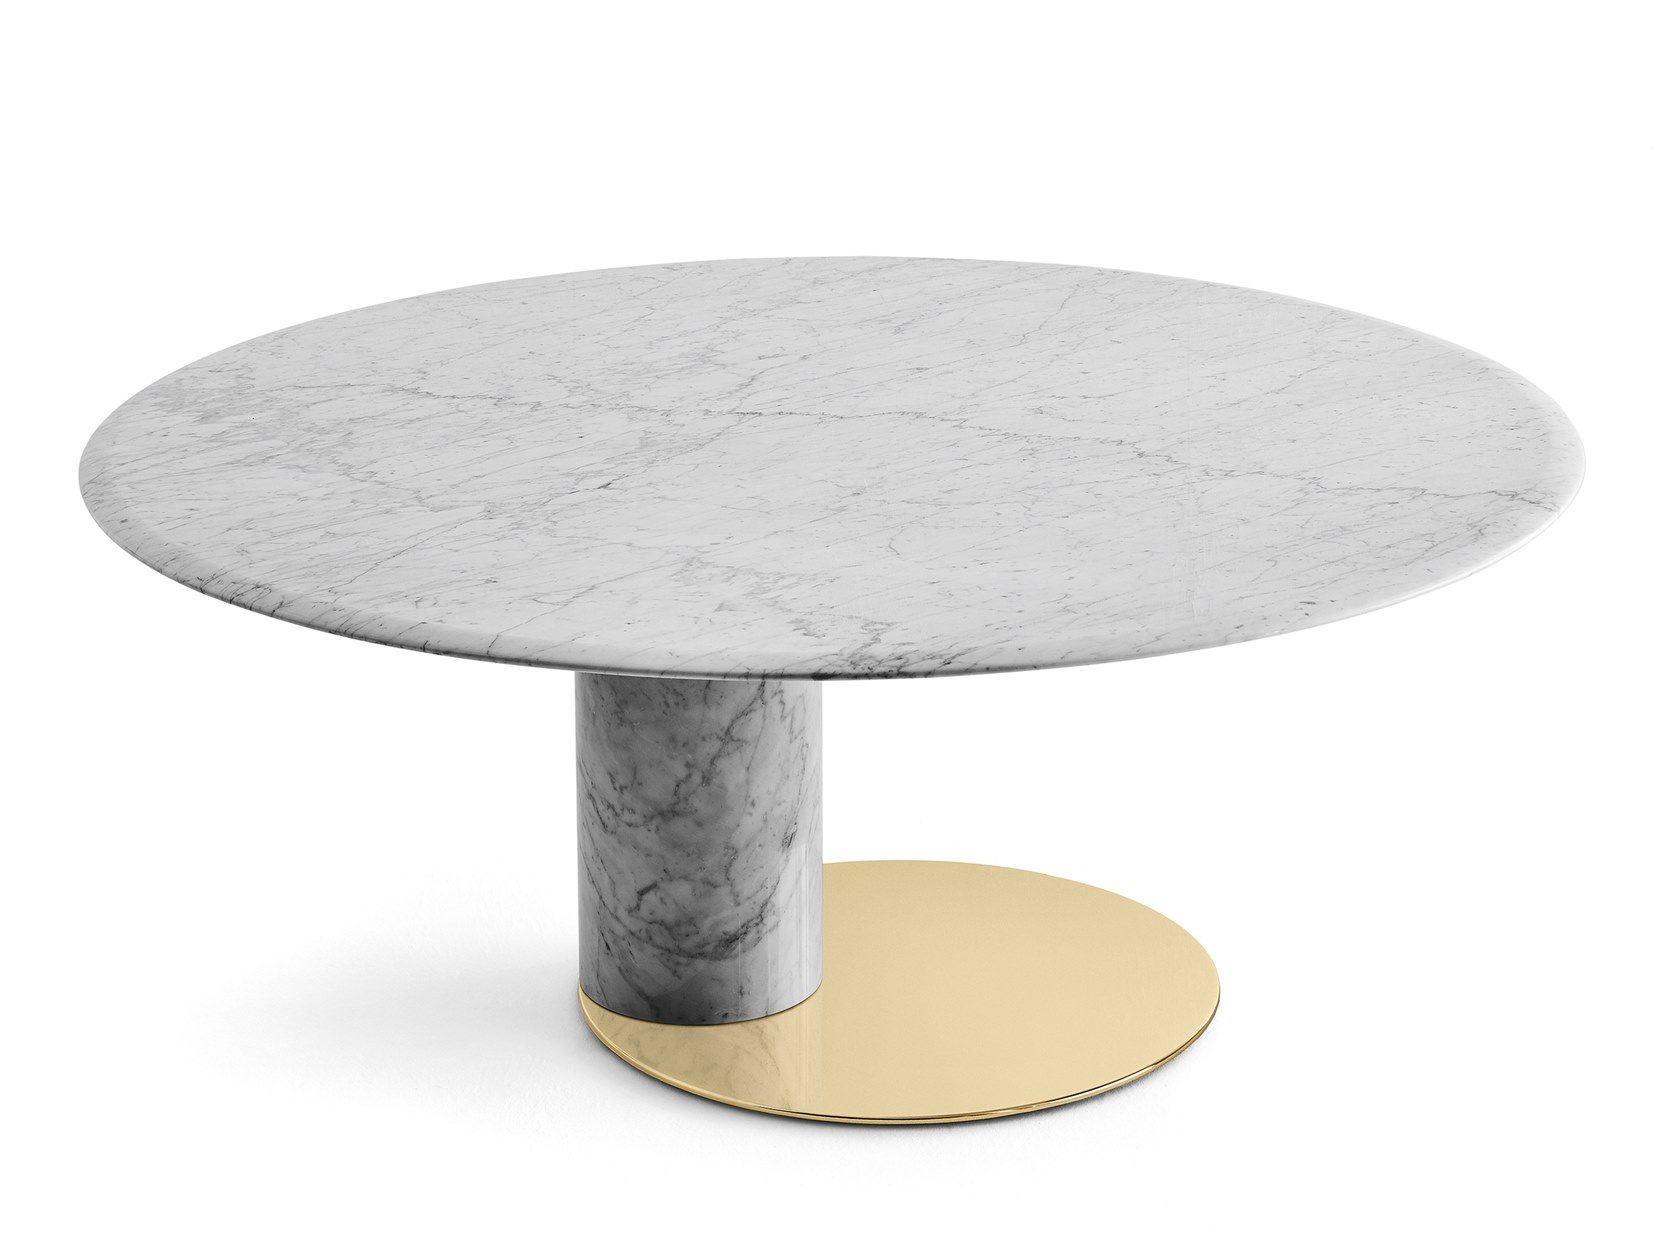 Oval Carrara Marble Table Oto Big By Gallotti Radice Marble Table Round Dining Table Dining Table